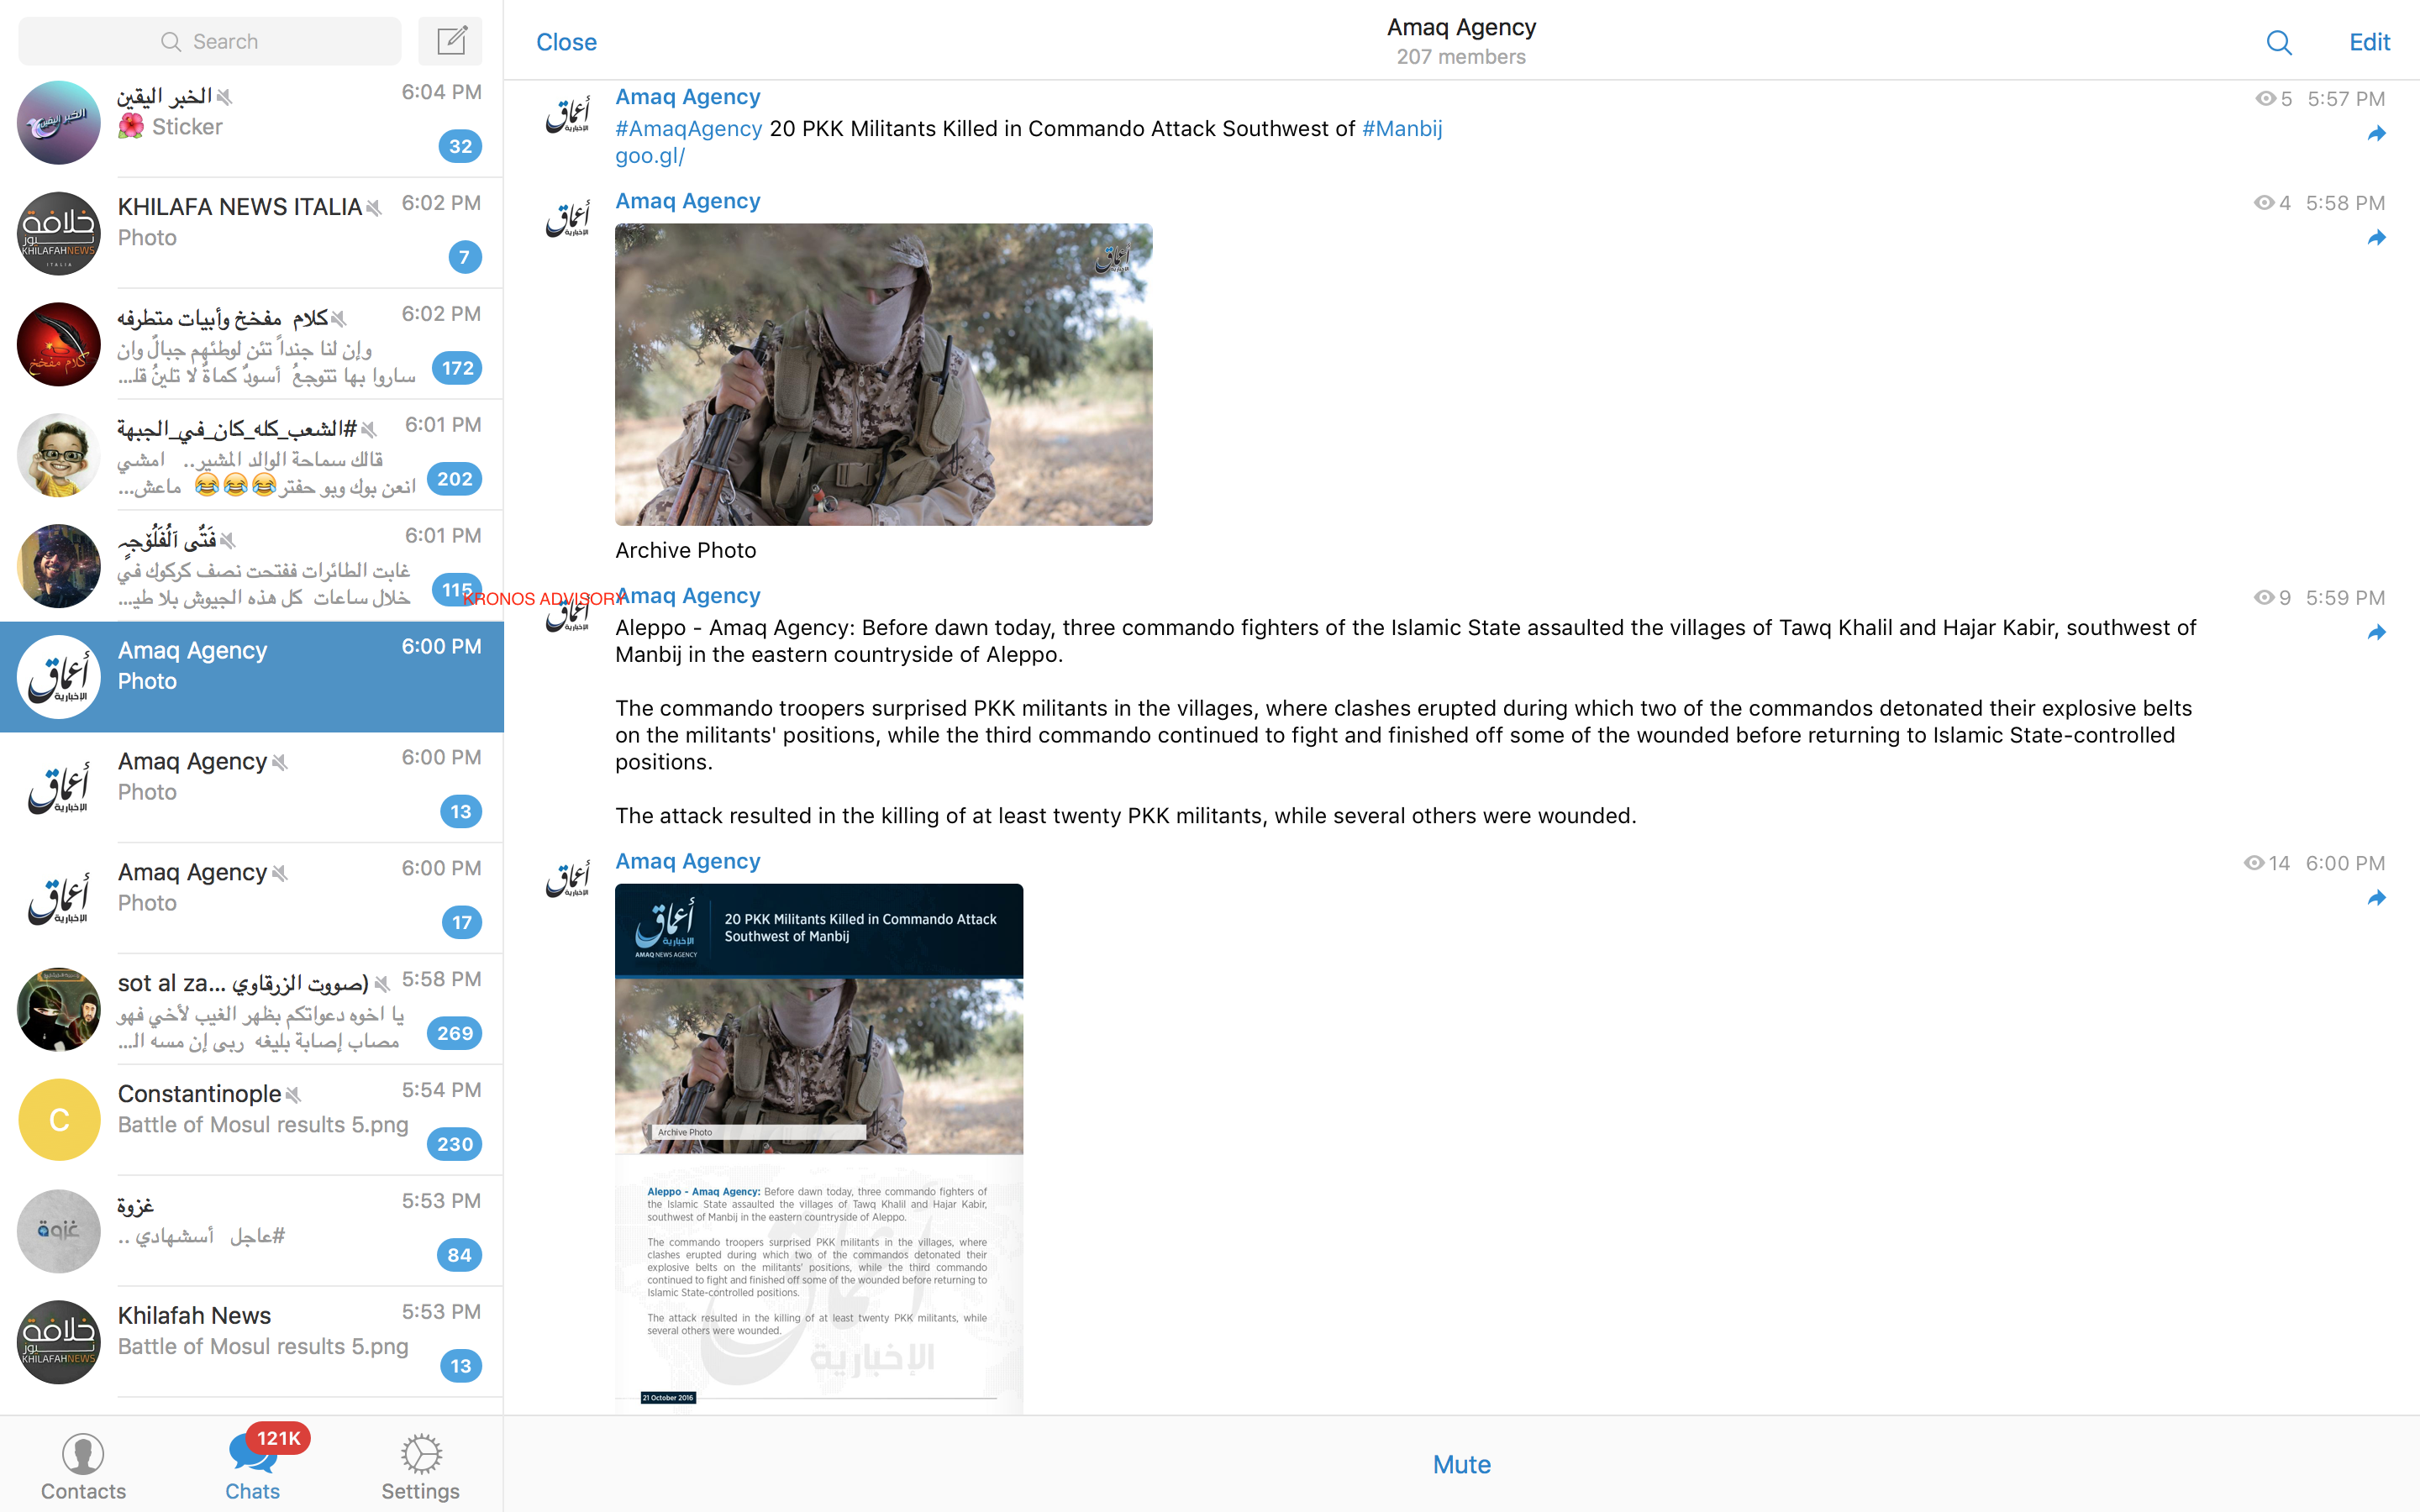 AMAQ AGENCY REPORTS ARCHIVE (ENGLISH) — 21 OCT 16